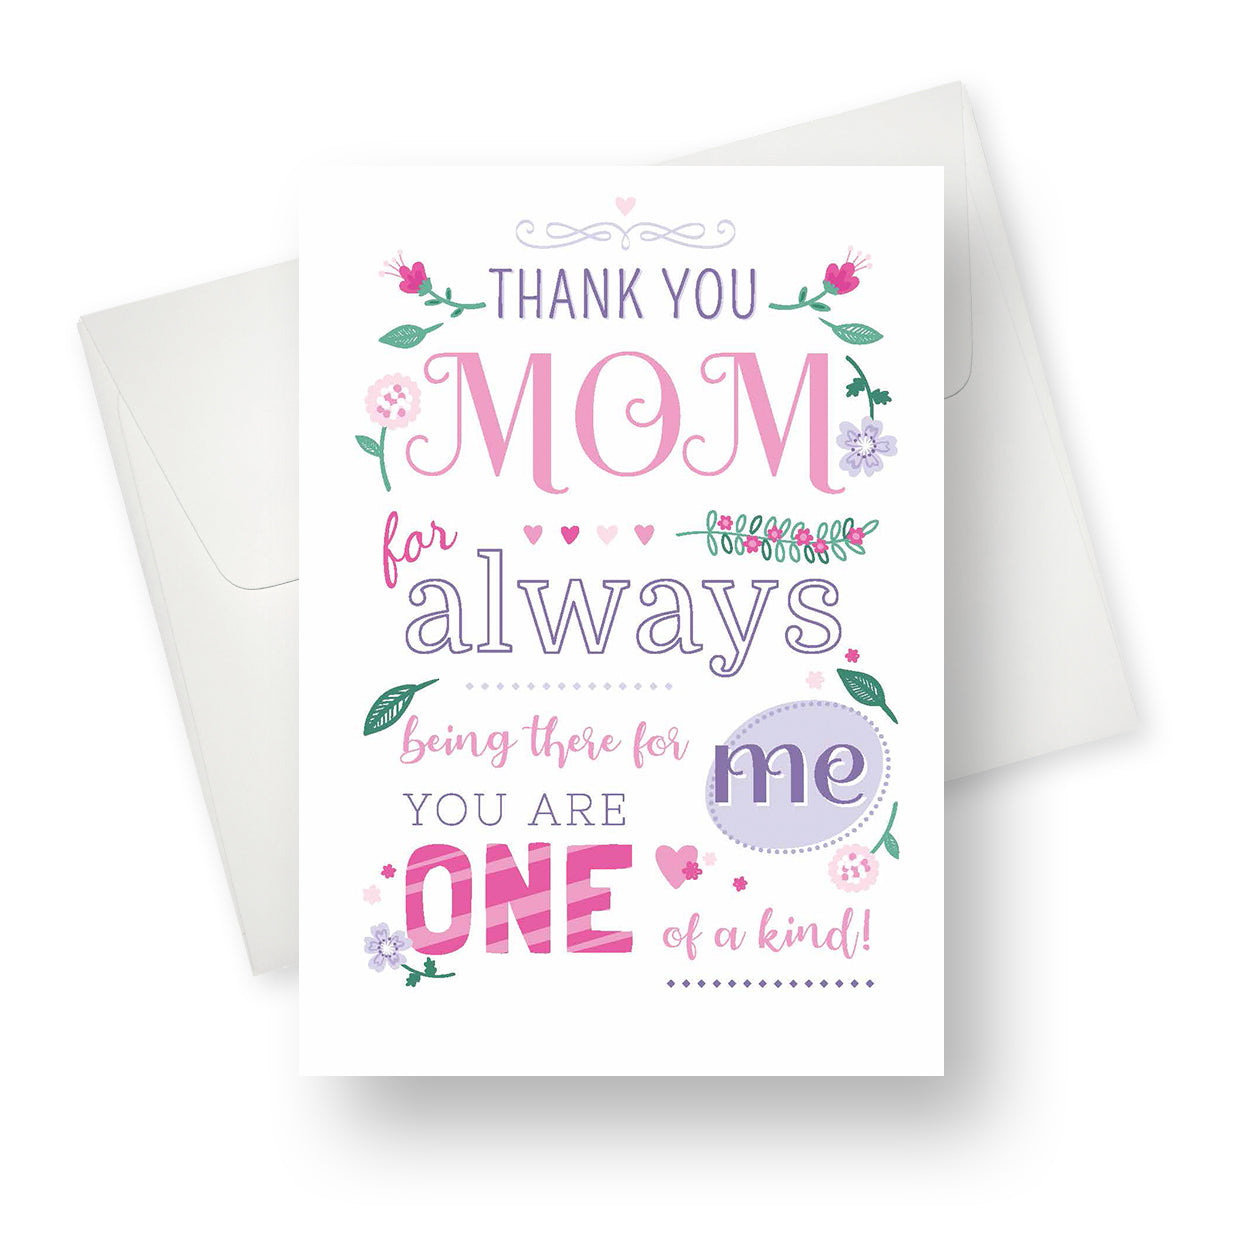 'Thank You Mom' Mother's Day Card - Northern Cards